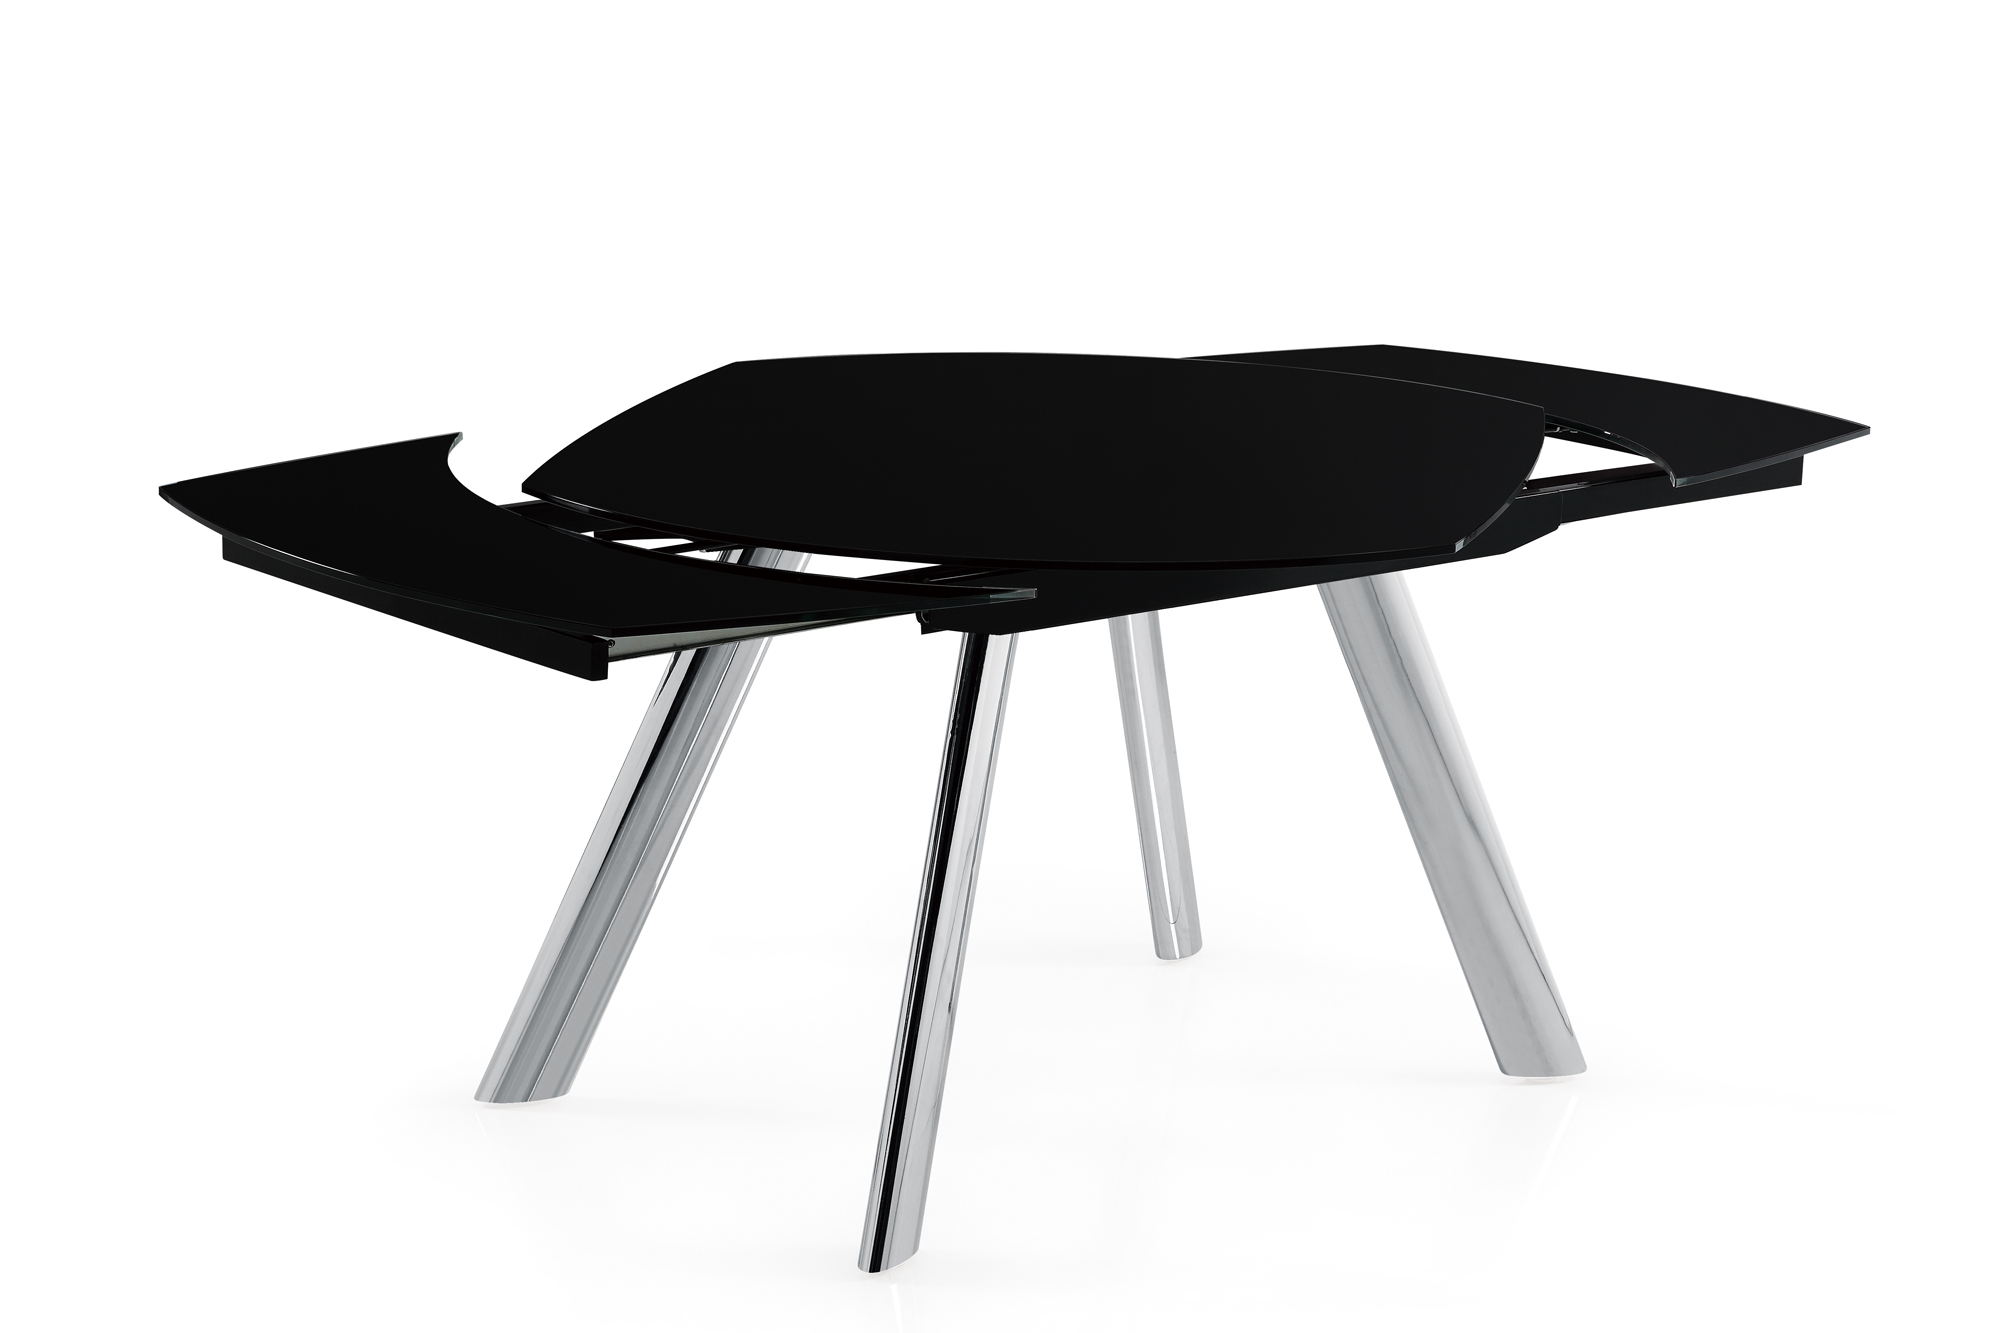 Dining Table D2320DT ChromeBlack Glass Top by Global  : D2320DT4 from futonland.com size 2000 x 1333 jpeg 287kB